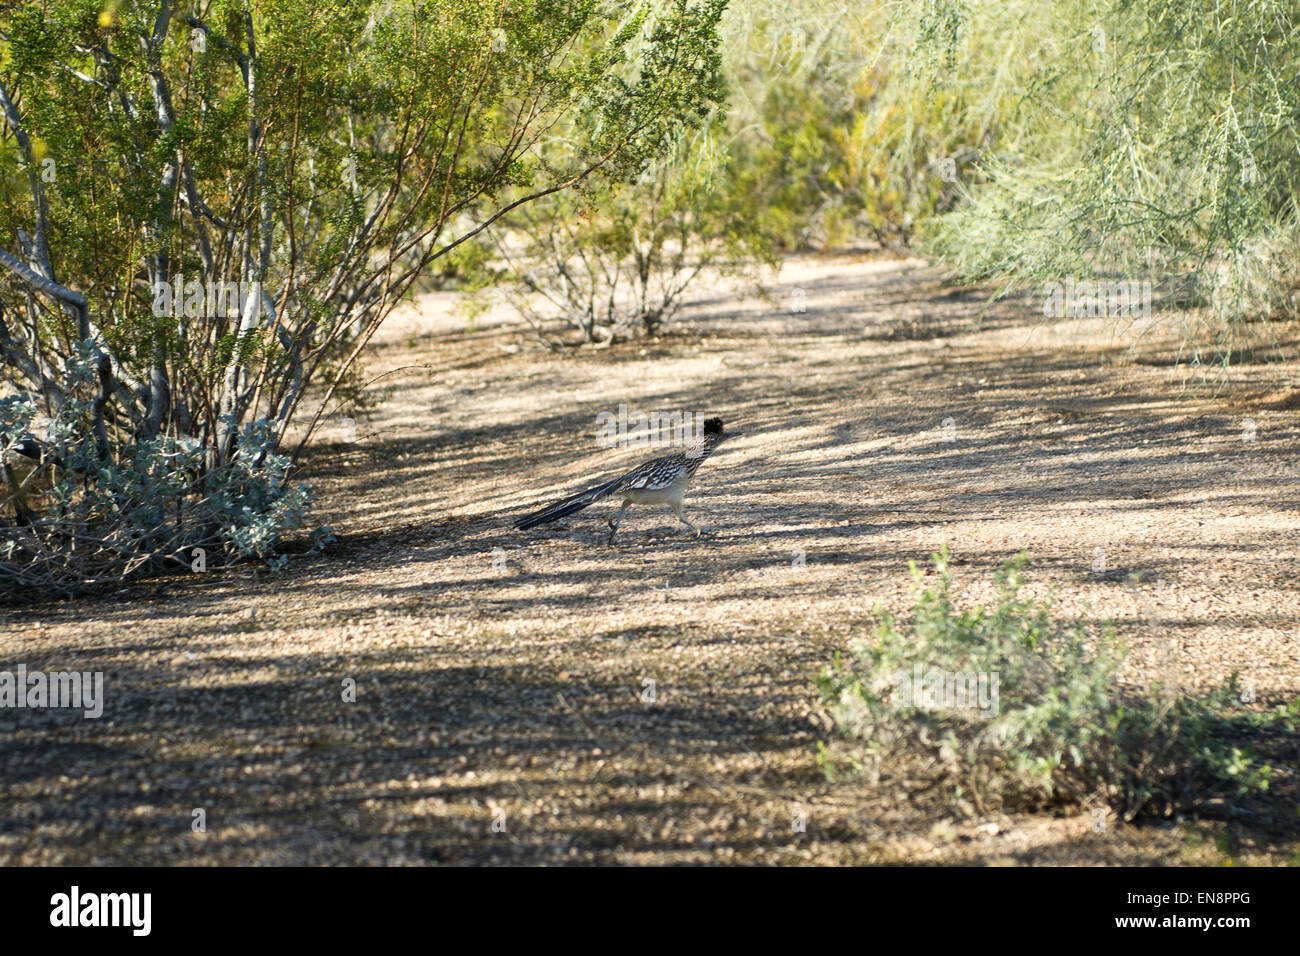 A roadrunner in the southwestern desert - Stock Image